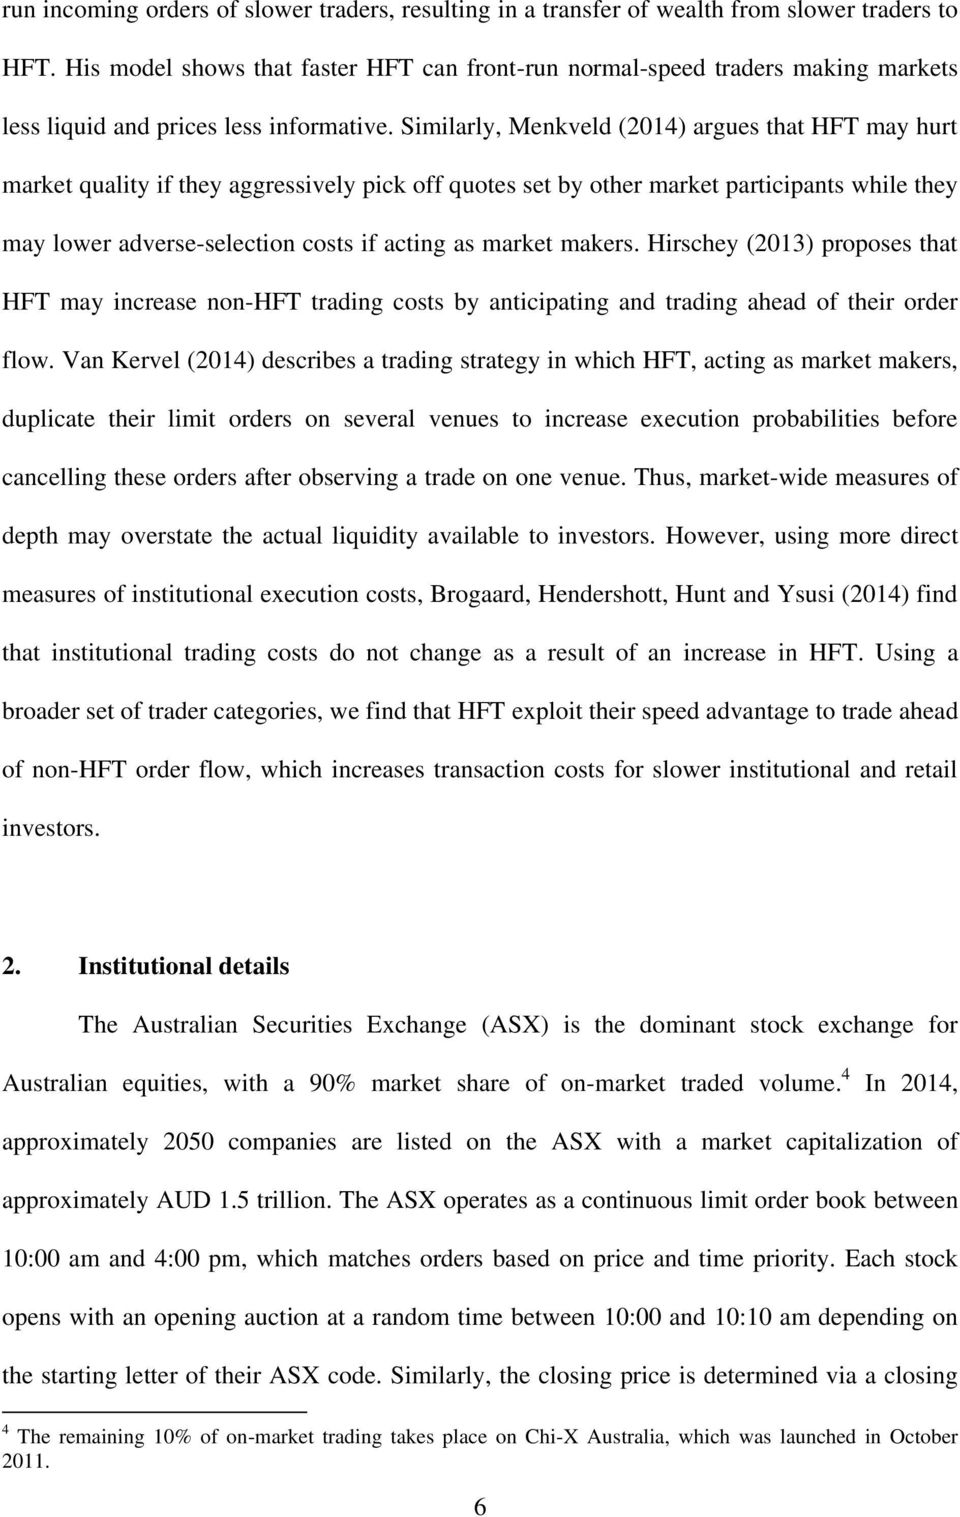 Similarly, Menkveld (2014) argues that HFT may hurt market quality if they aggressively pick off quotes set by other market participants while they may lower adverse-selection costs if acting as